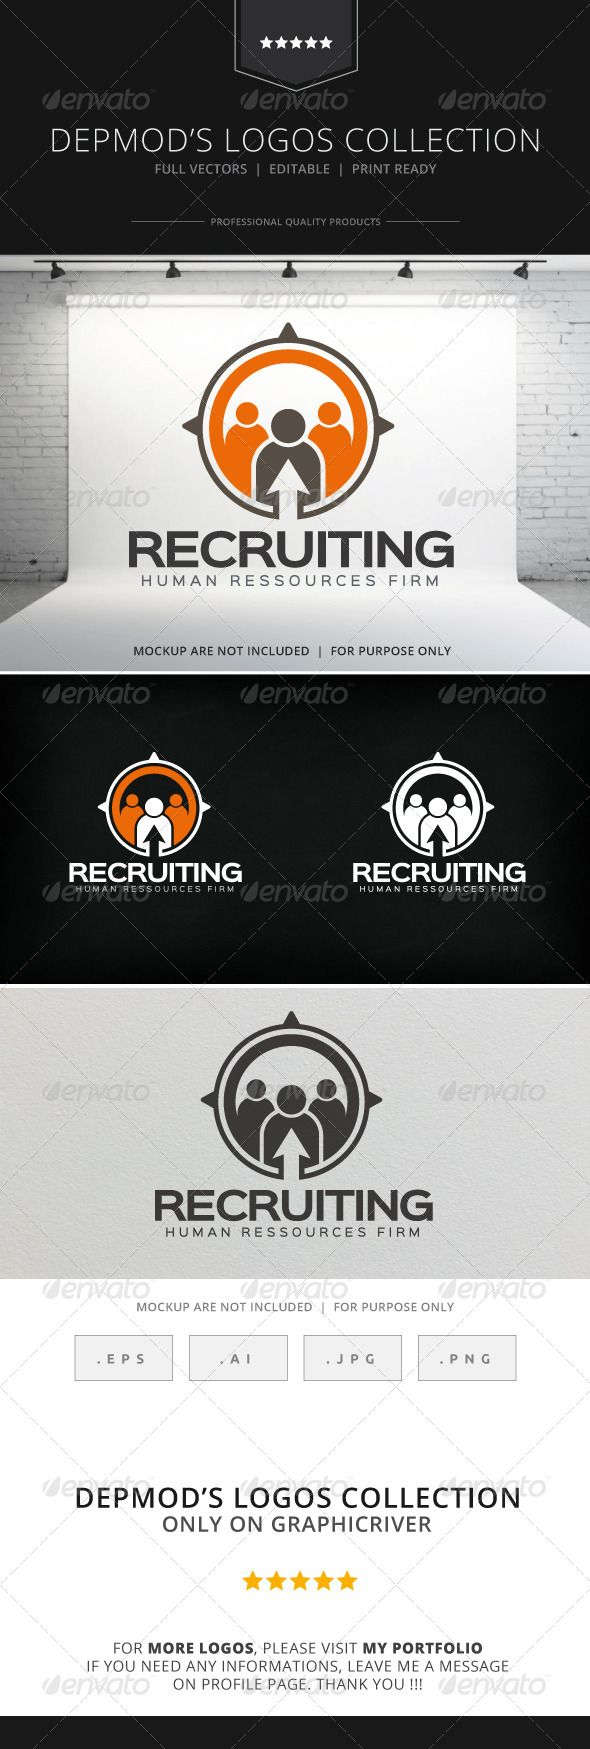 10 best recruitment logo images on pinterest logos architecture recruiting logo magicingreecefo Gallery